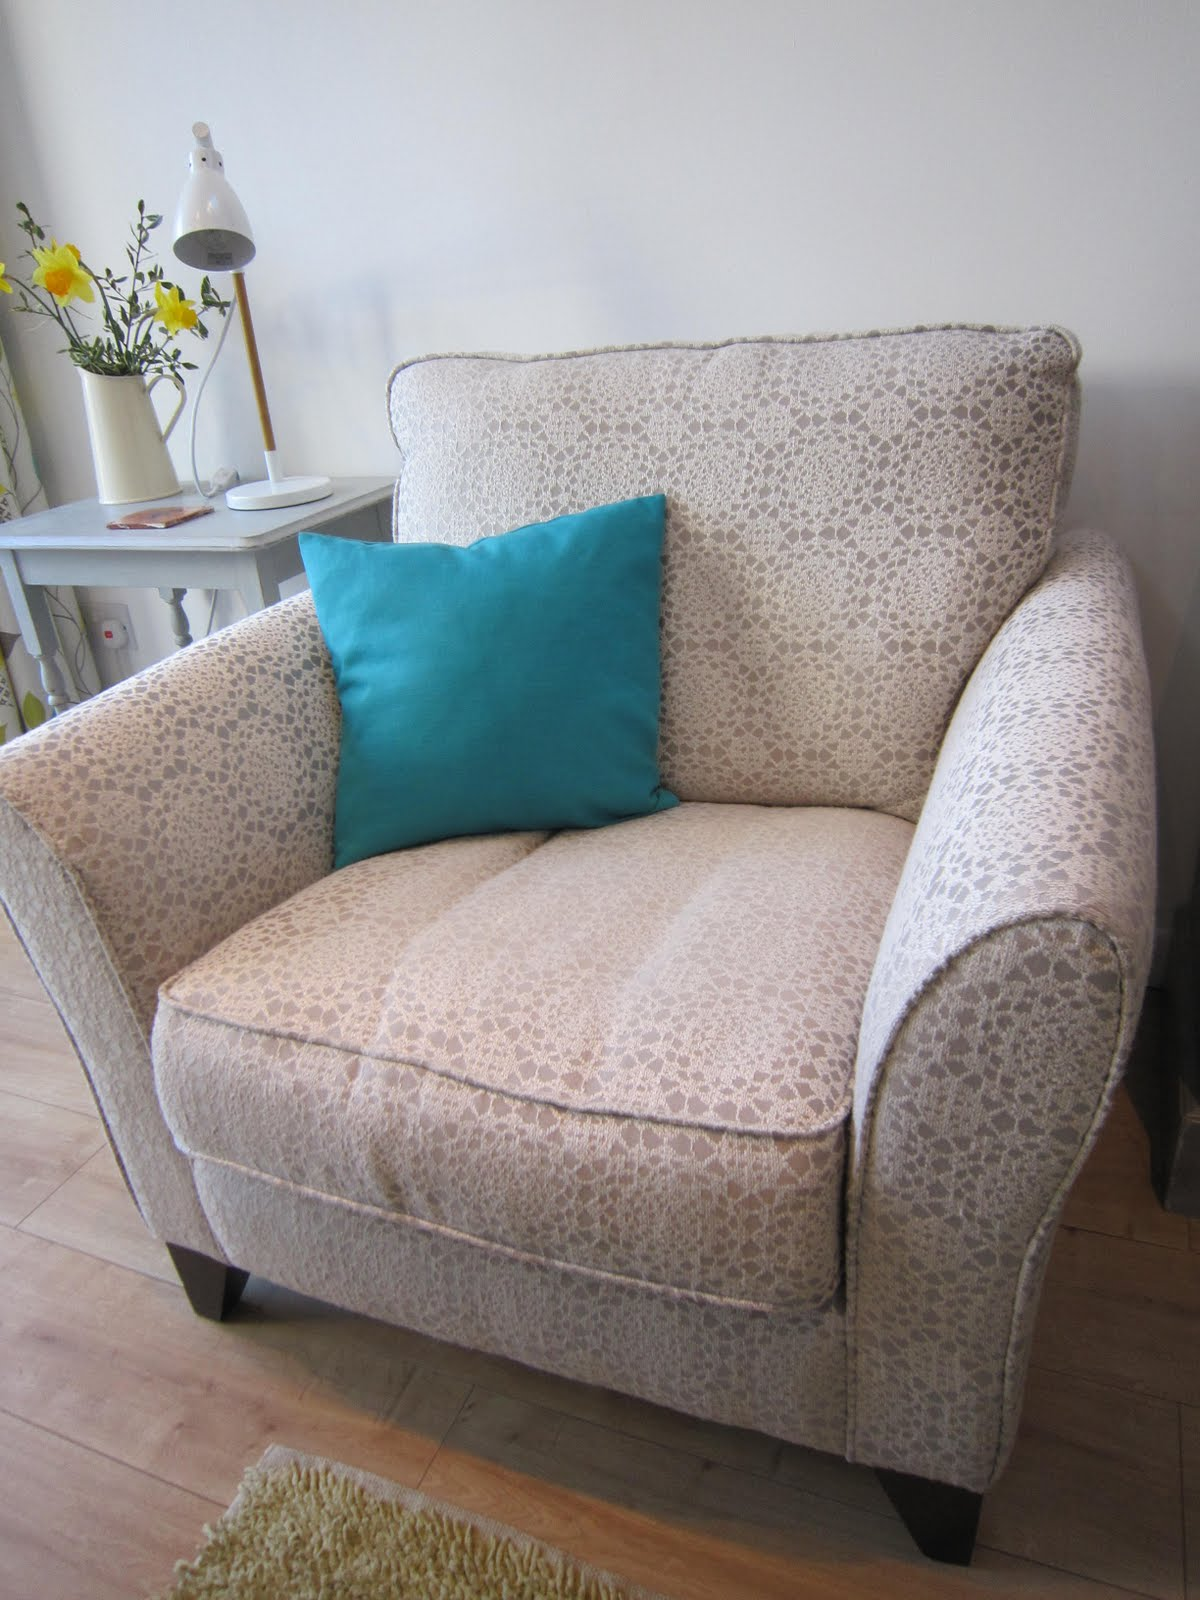 Comfiest Chair Vintage Tea Time A Nice Big Comfy Chair